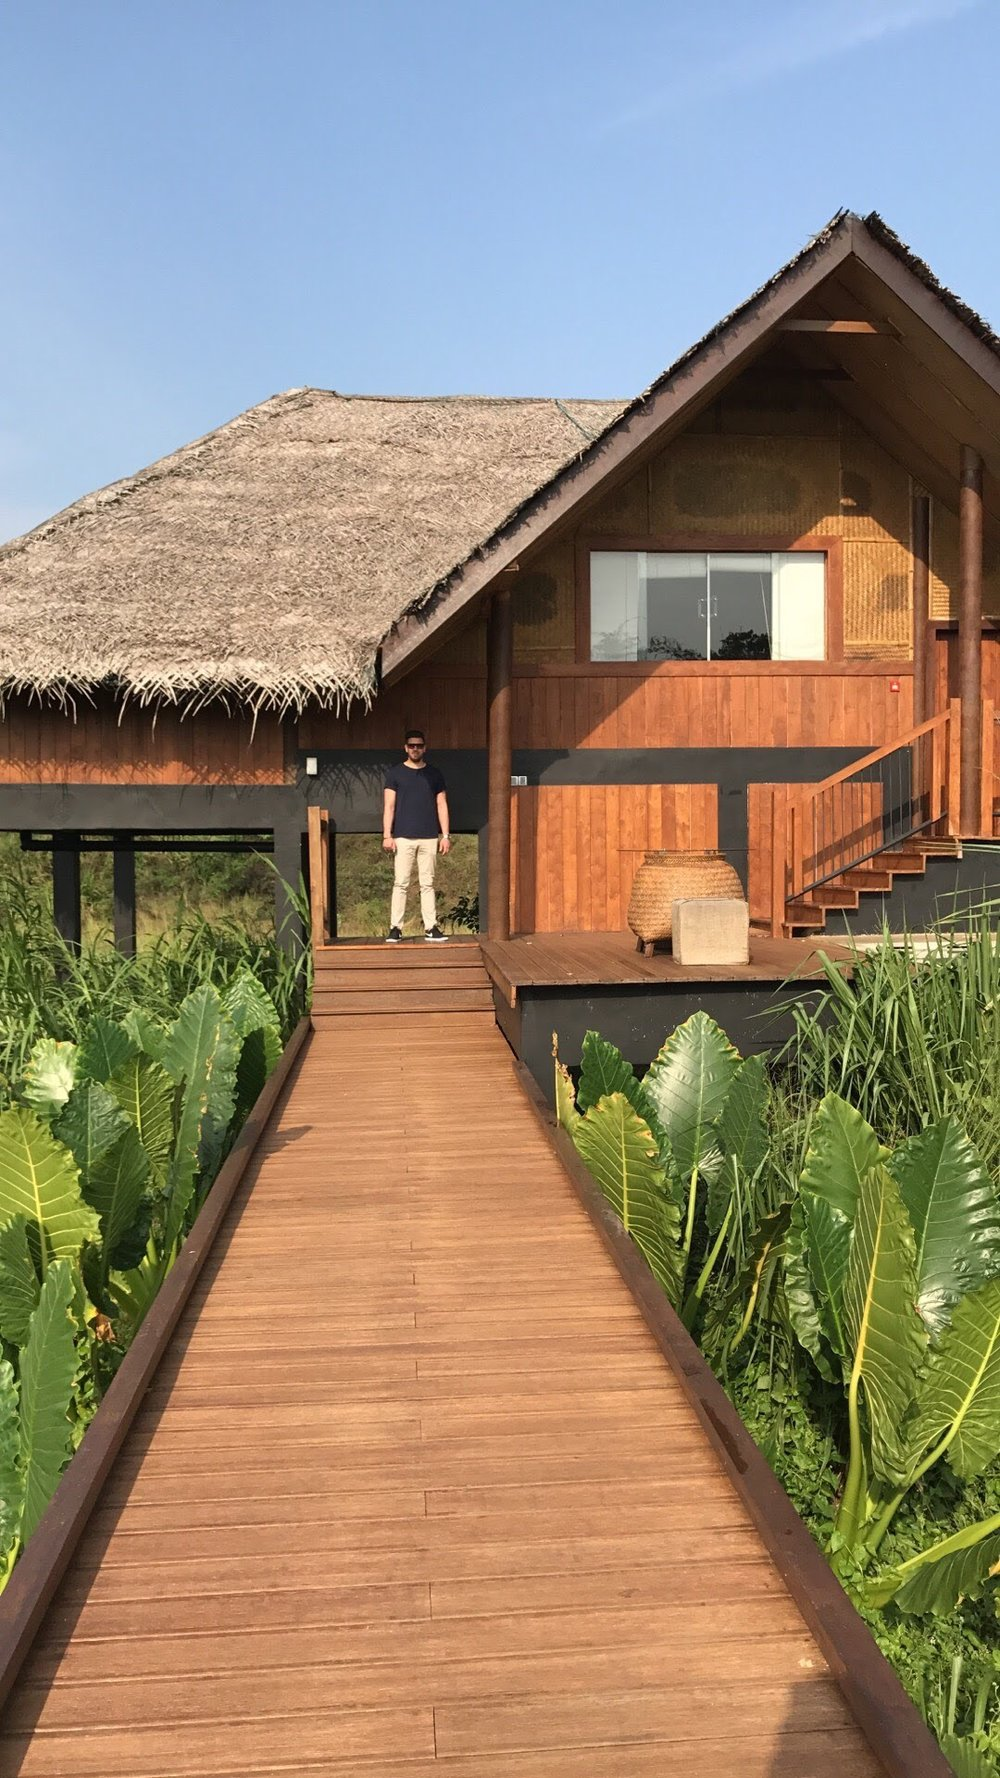 invite-to-paradise-maldives-sri-lanka-specialists-experts-travel-agent-tour-operator-customer-feedback-lucas-emily-fenning-elephant-orphanage-vil-uyana-room-1.jpg